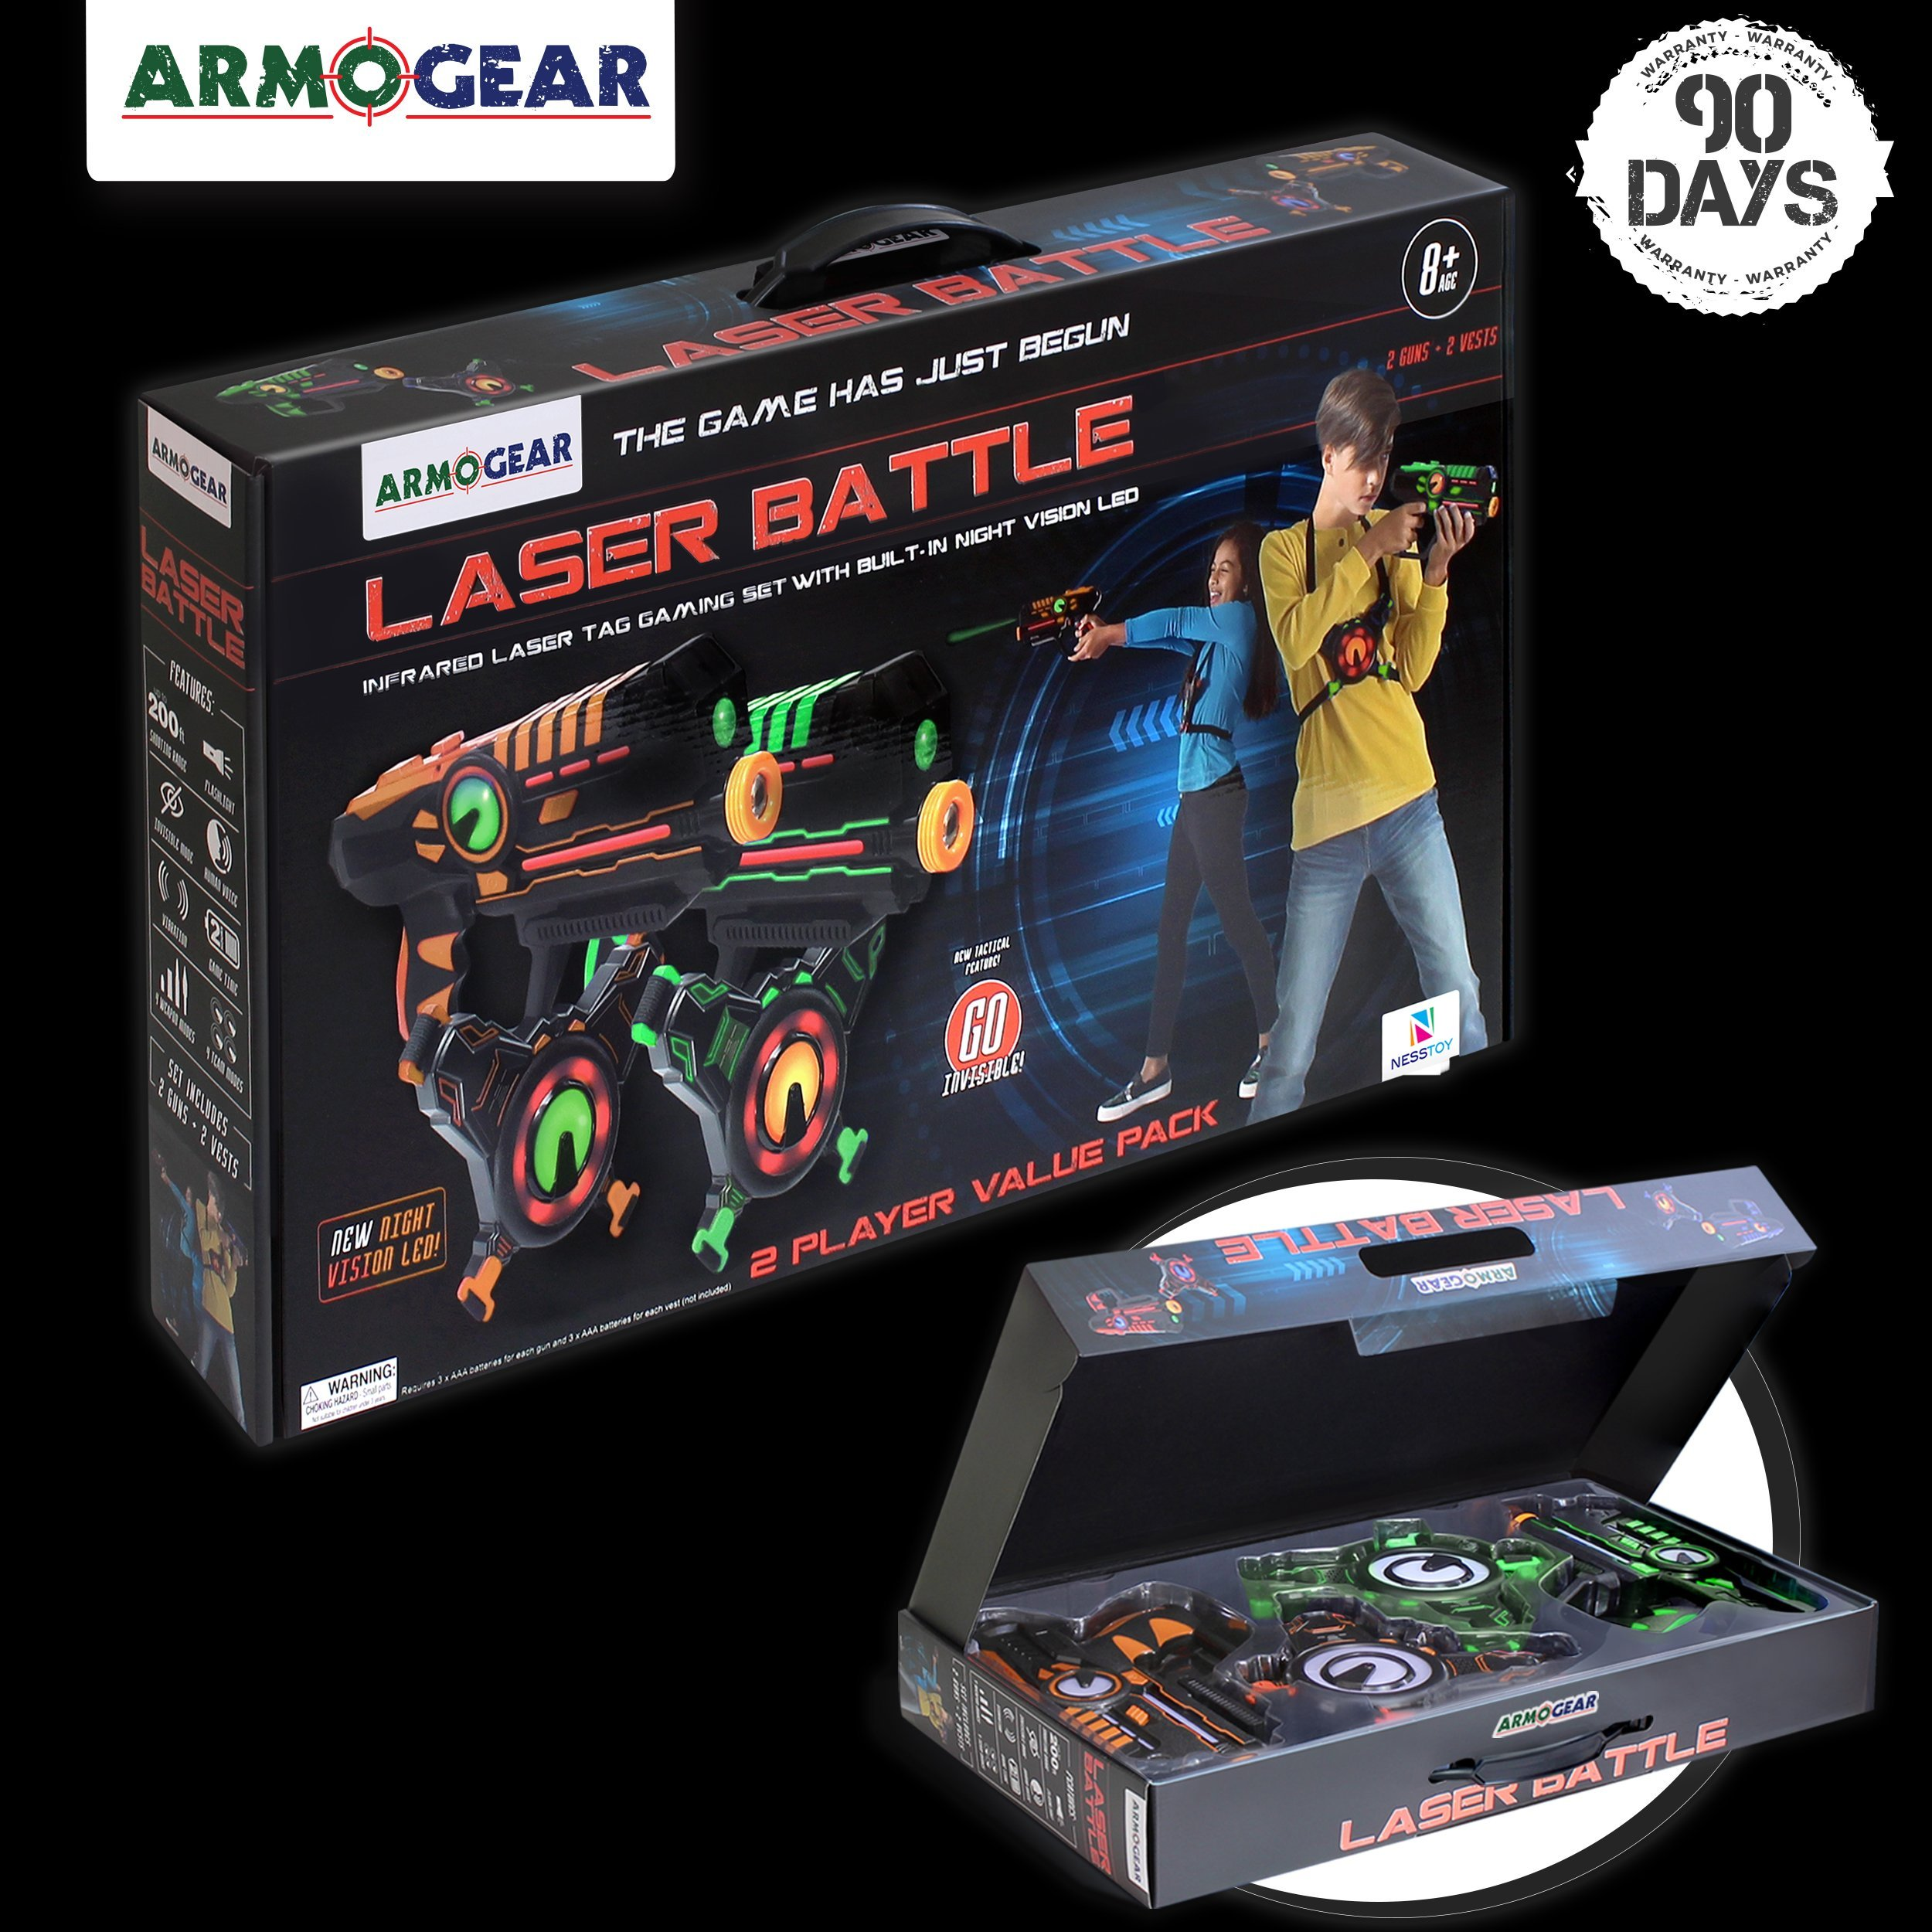 ArmoGear Infrared Laser Tag Guns and Vests - Laser Battle Game Pack Set of 2 in Gift Box Packaging - Infrared 0.9mW by ArmoGear (Image #6)